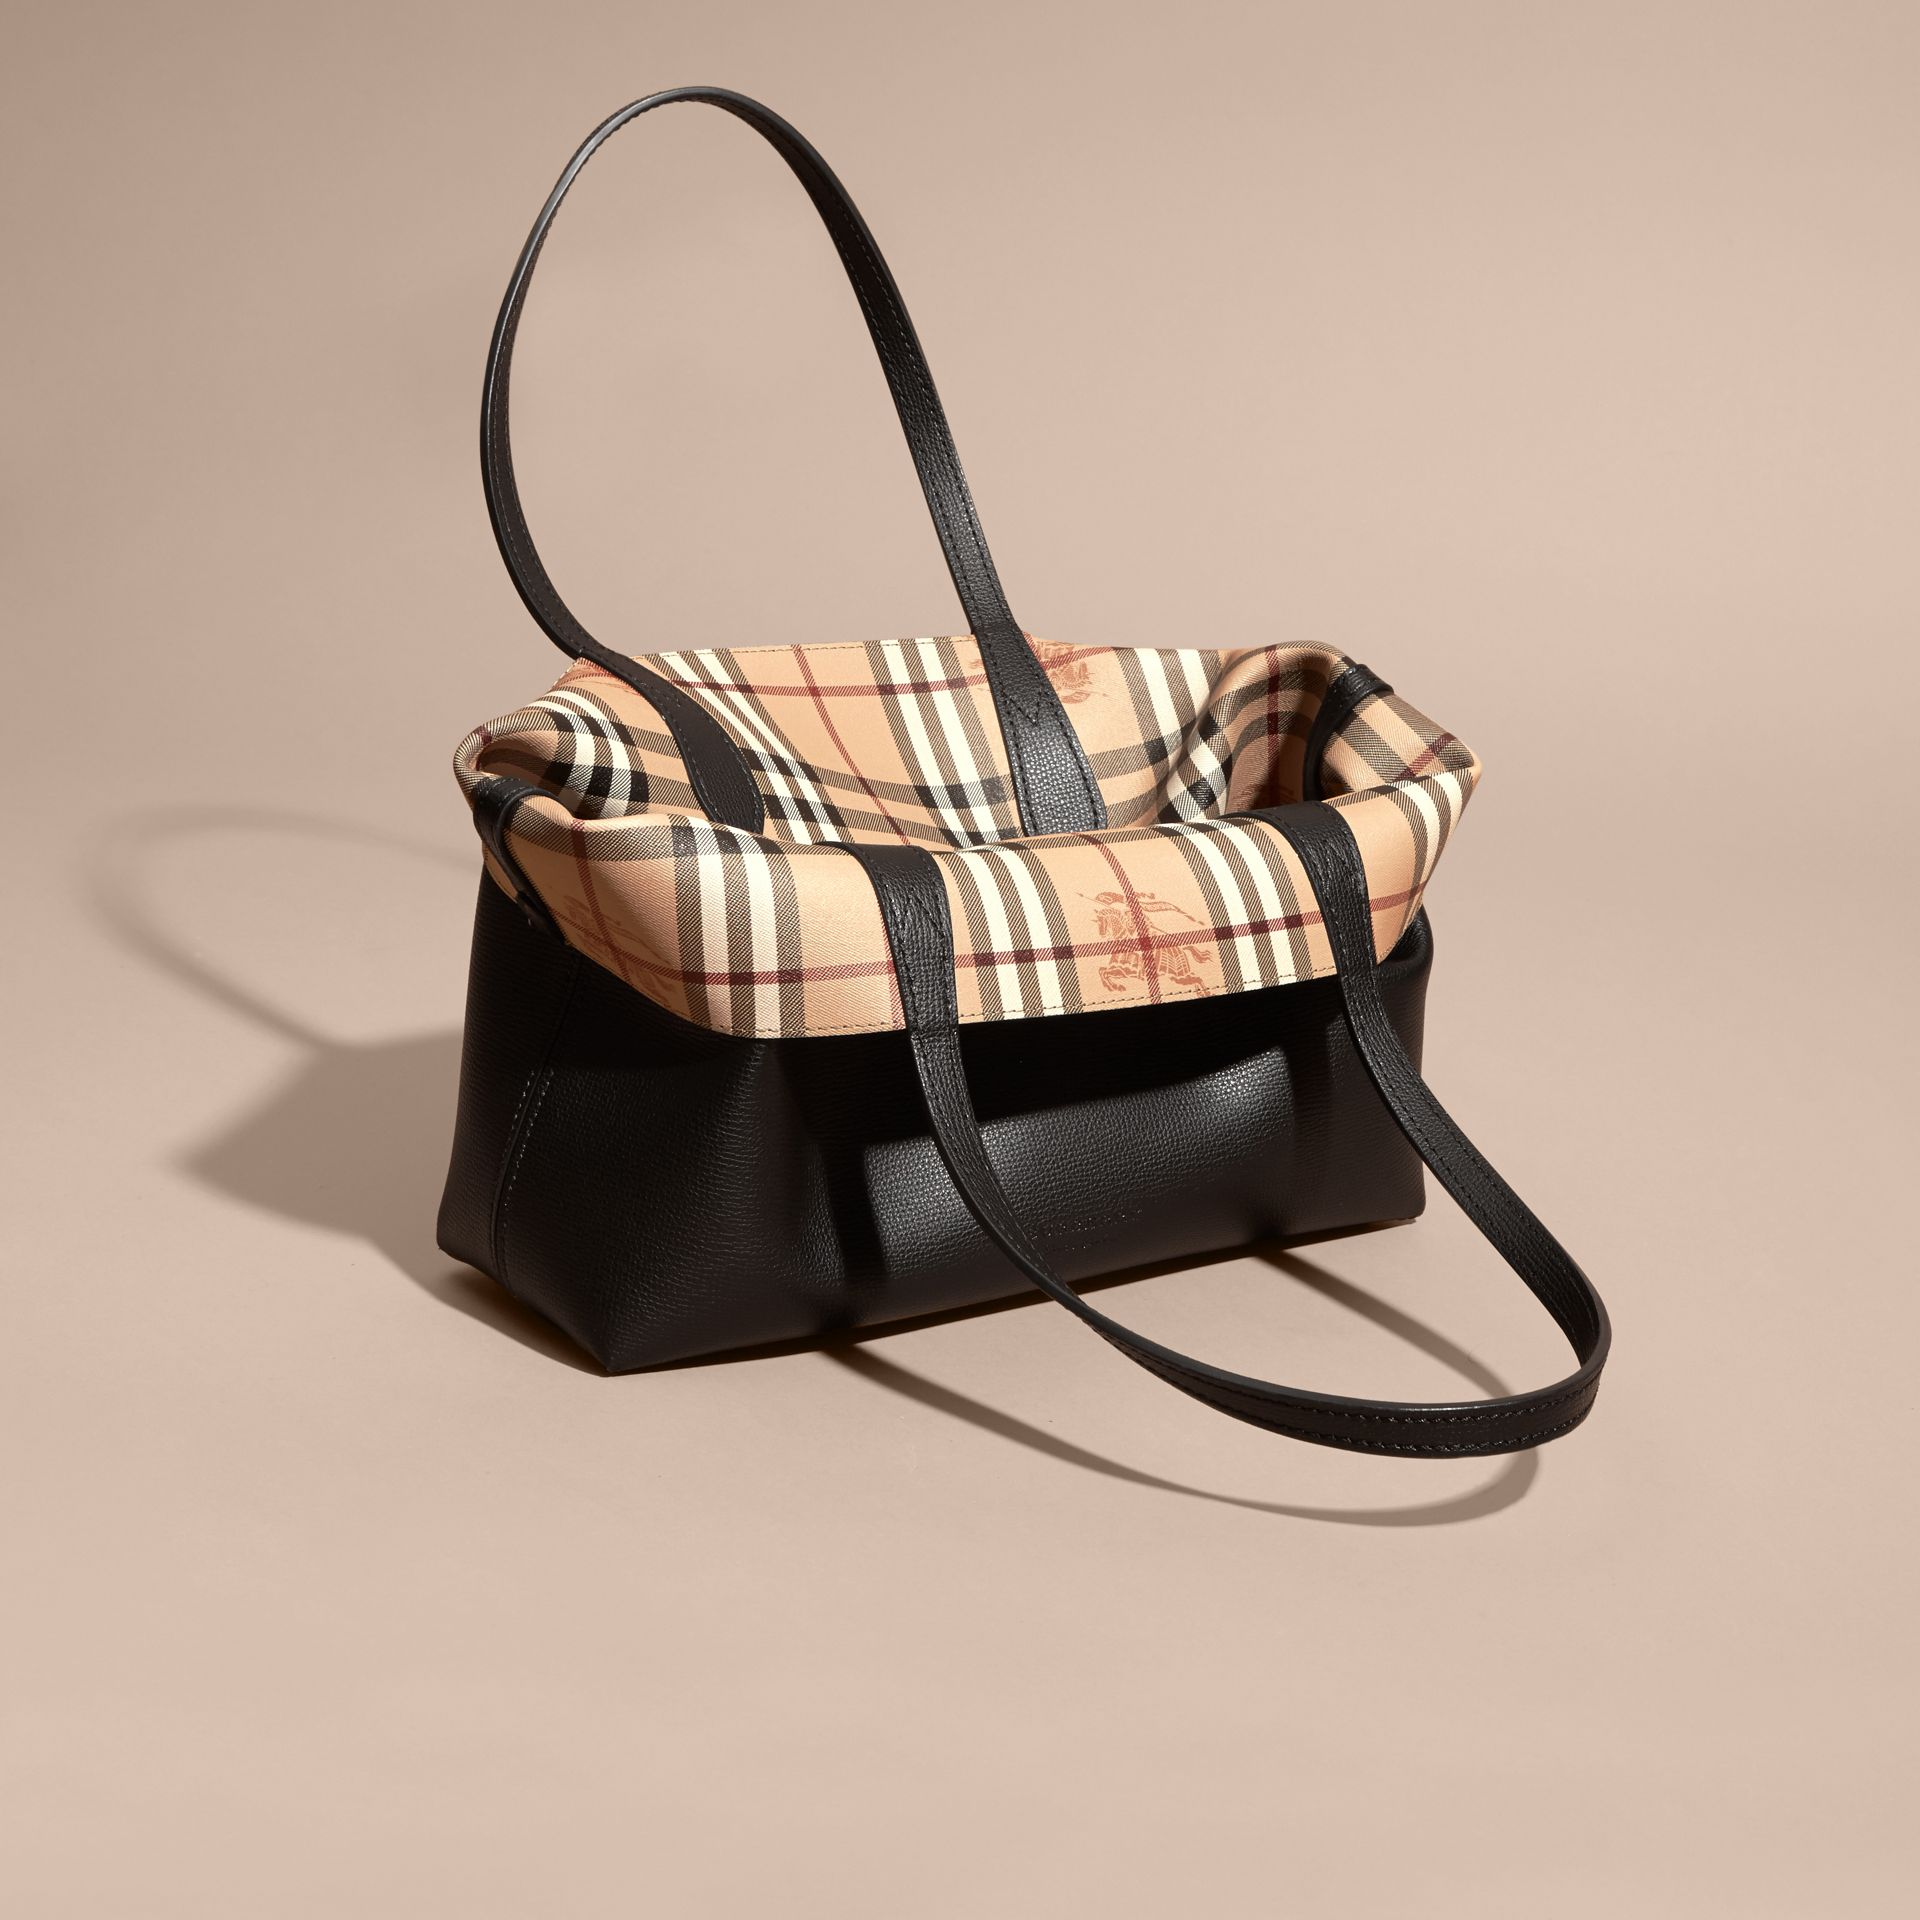 The Small Reversible Tote in Haymarket Check and Leather in Black - Women | Burberry - gallery image 5